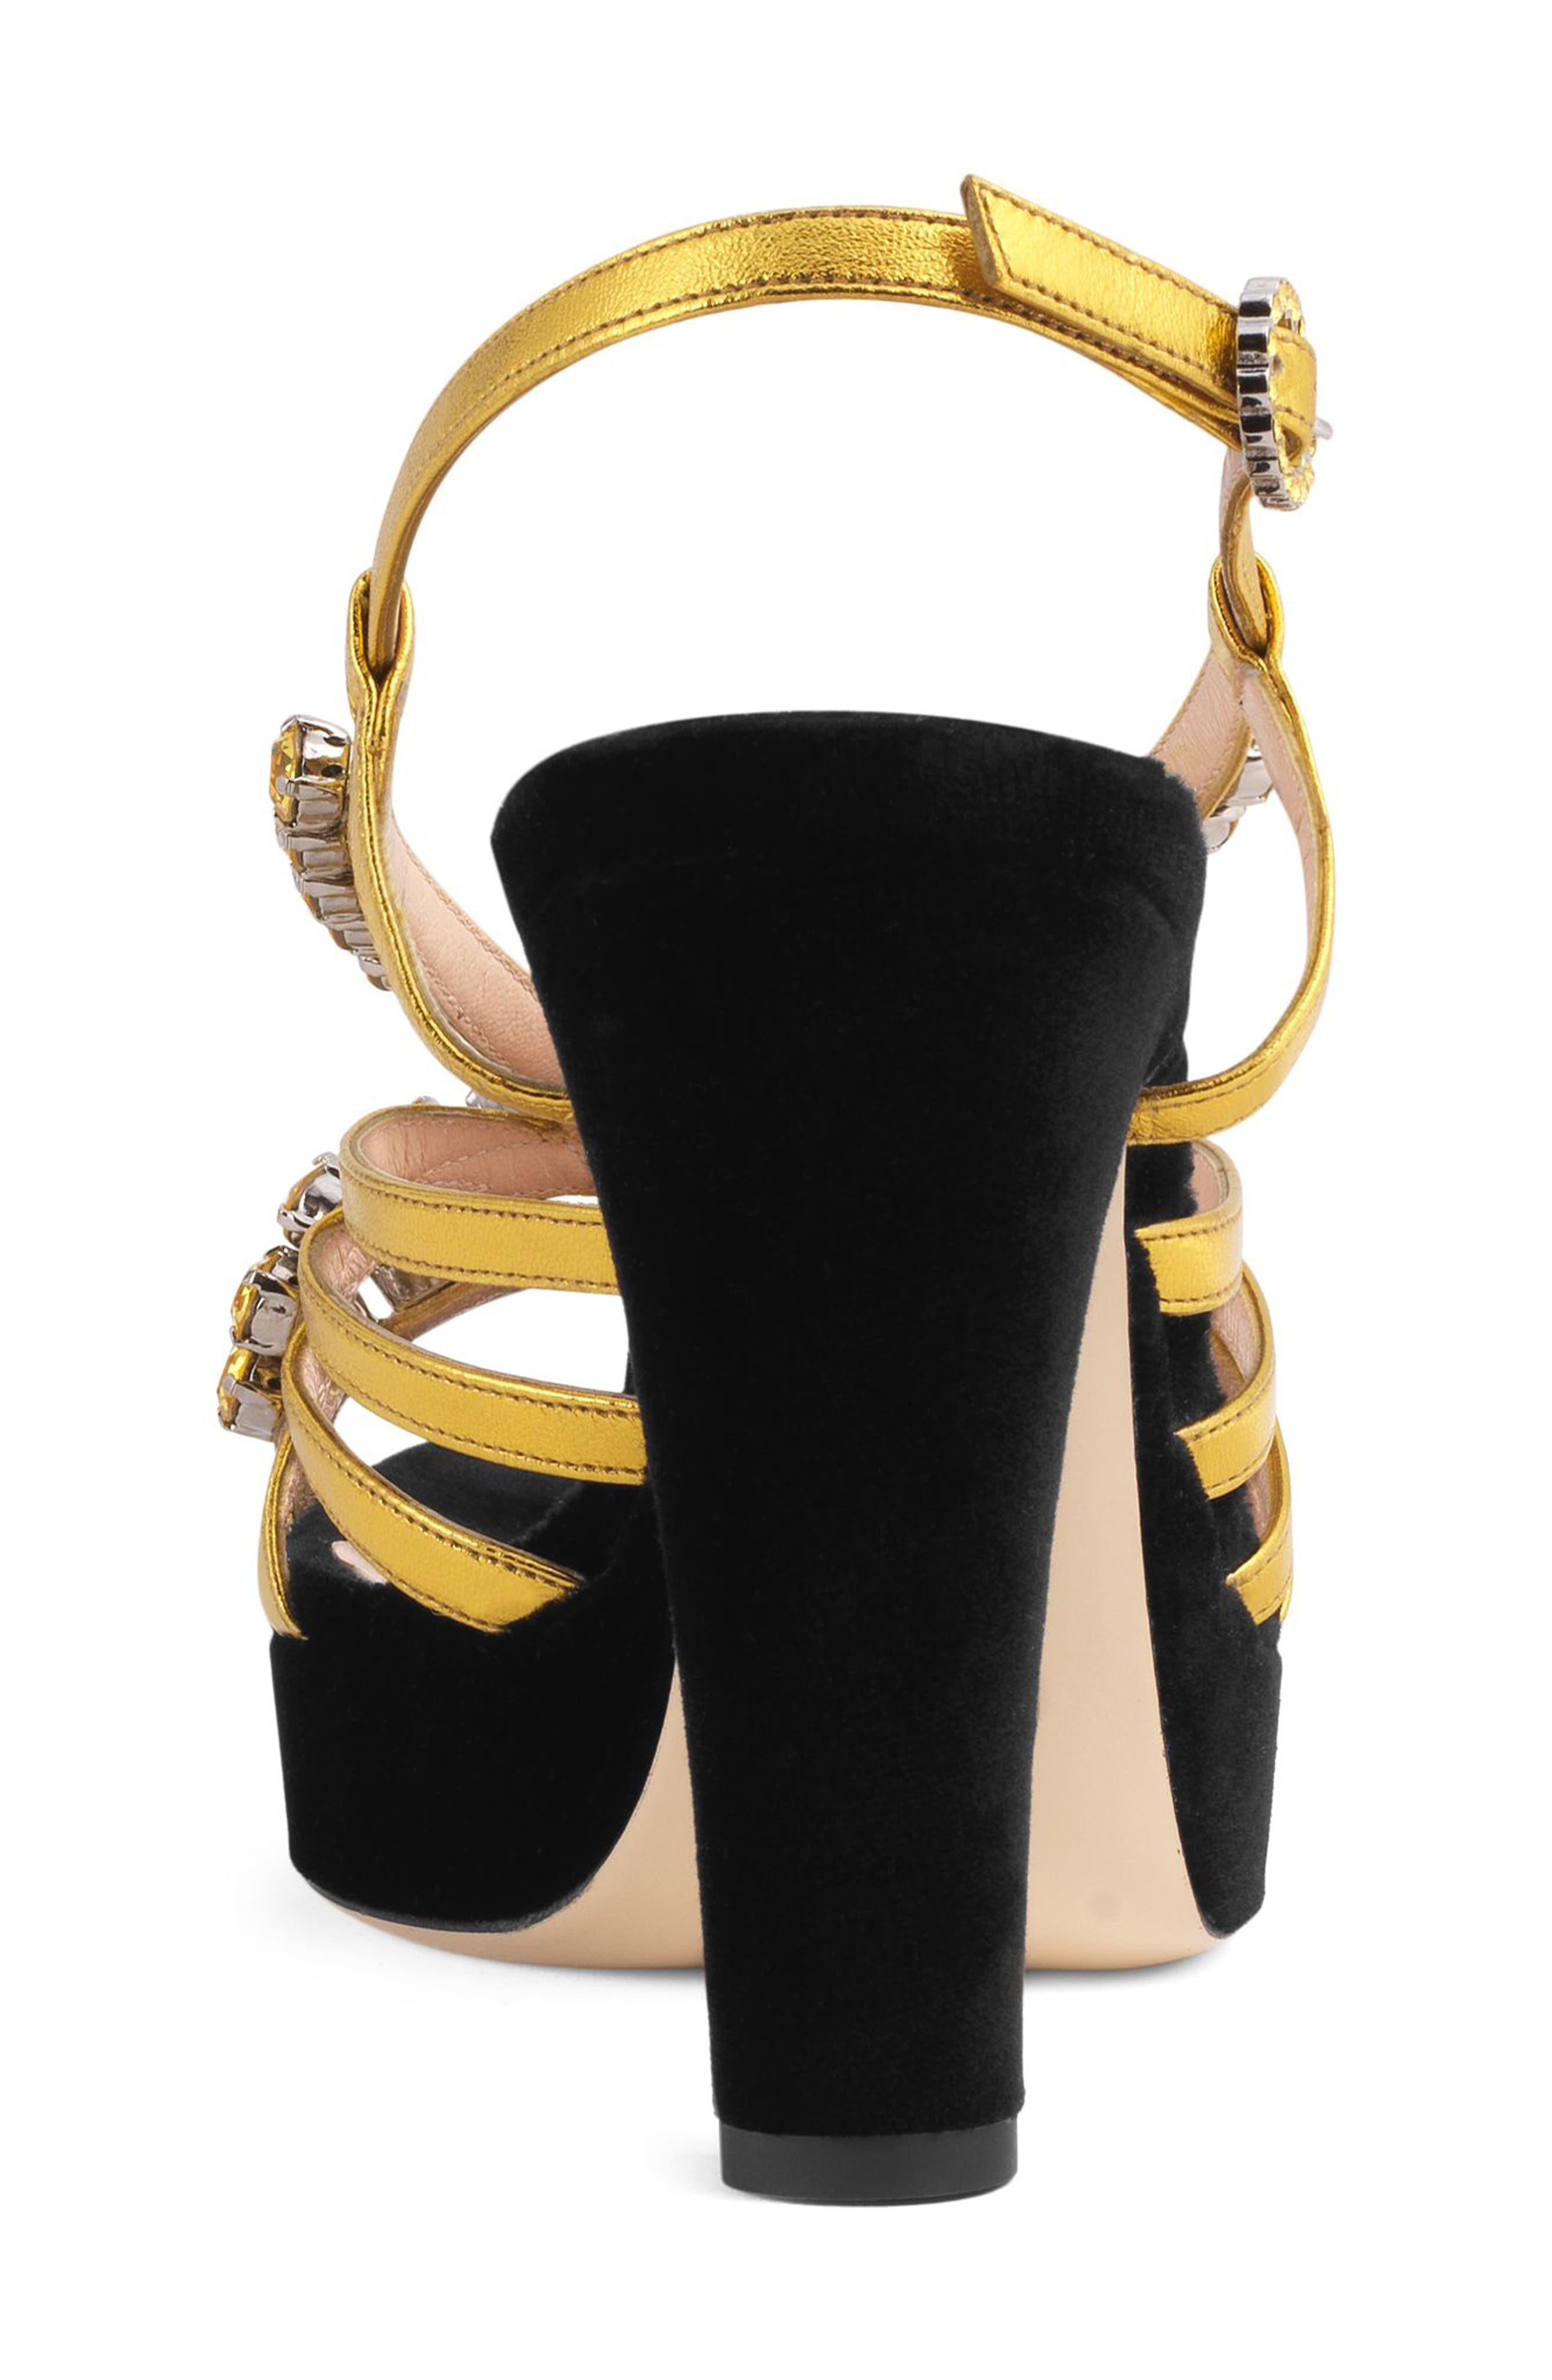 Zephyra Jewel Sandal,                             Alternate thumbnail 5, color,                             BLACK/ GOLD